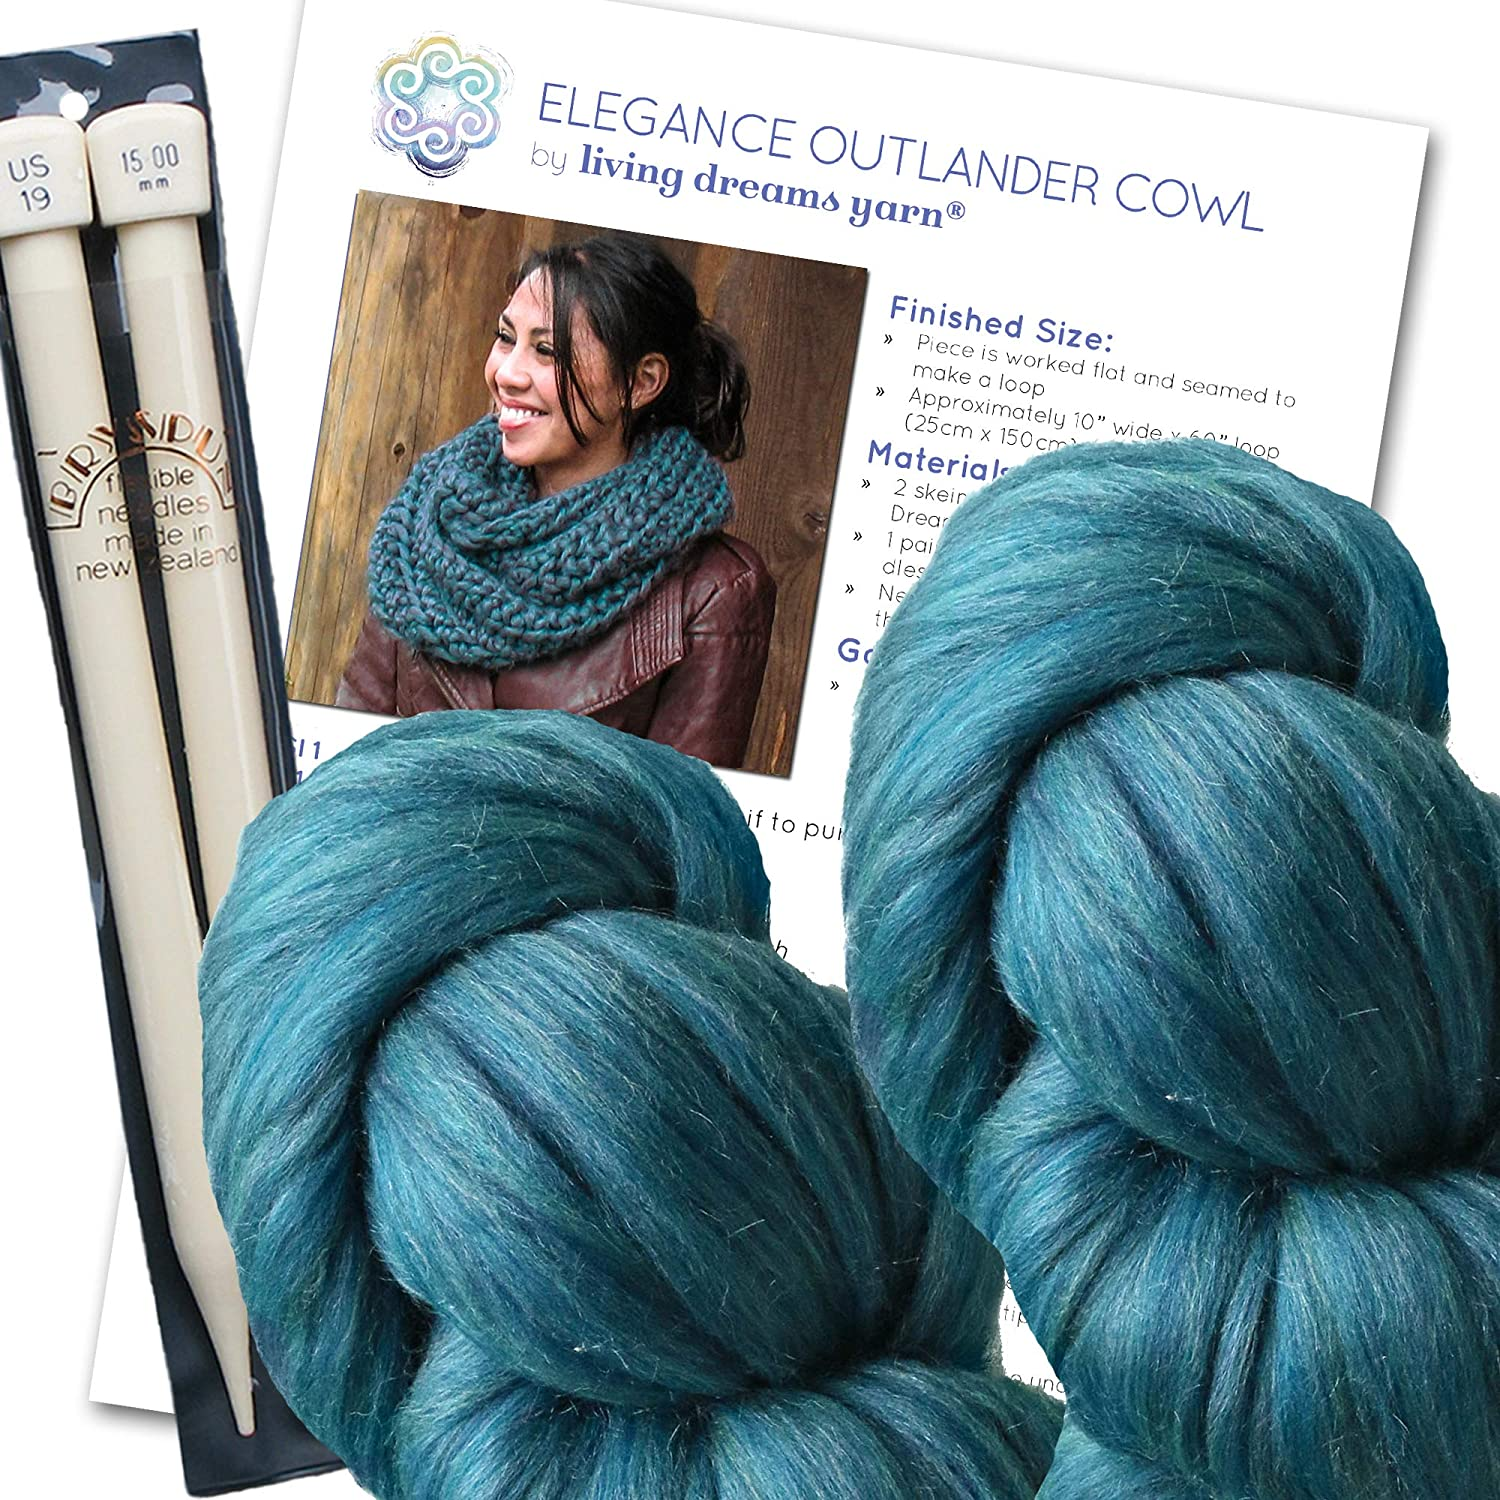 B00OQT6352 Elegance Outlander Cowl Knit Kit Includes Super Soft Merino Silk Yarn, Big Needles and Written Pattern with Photo Tutorial. Color: Sapphire 81FcoQ0fV9L